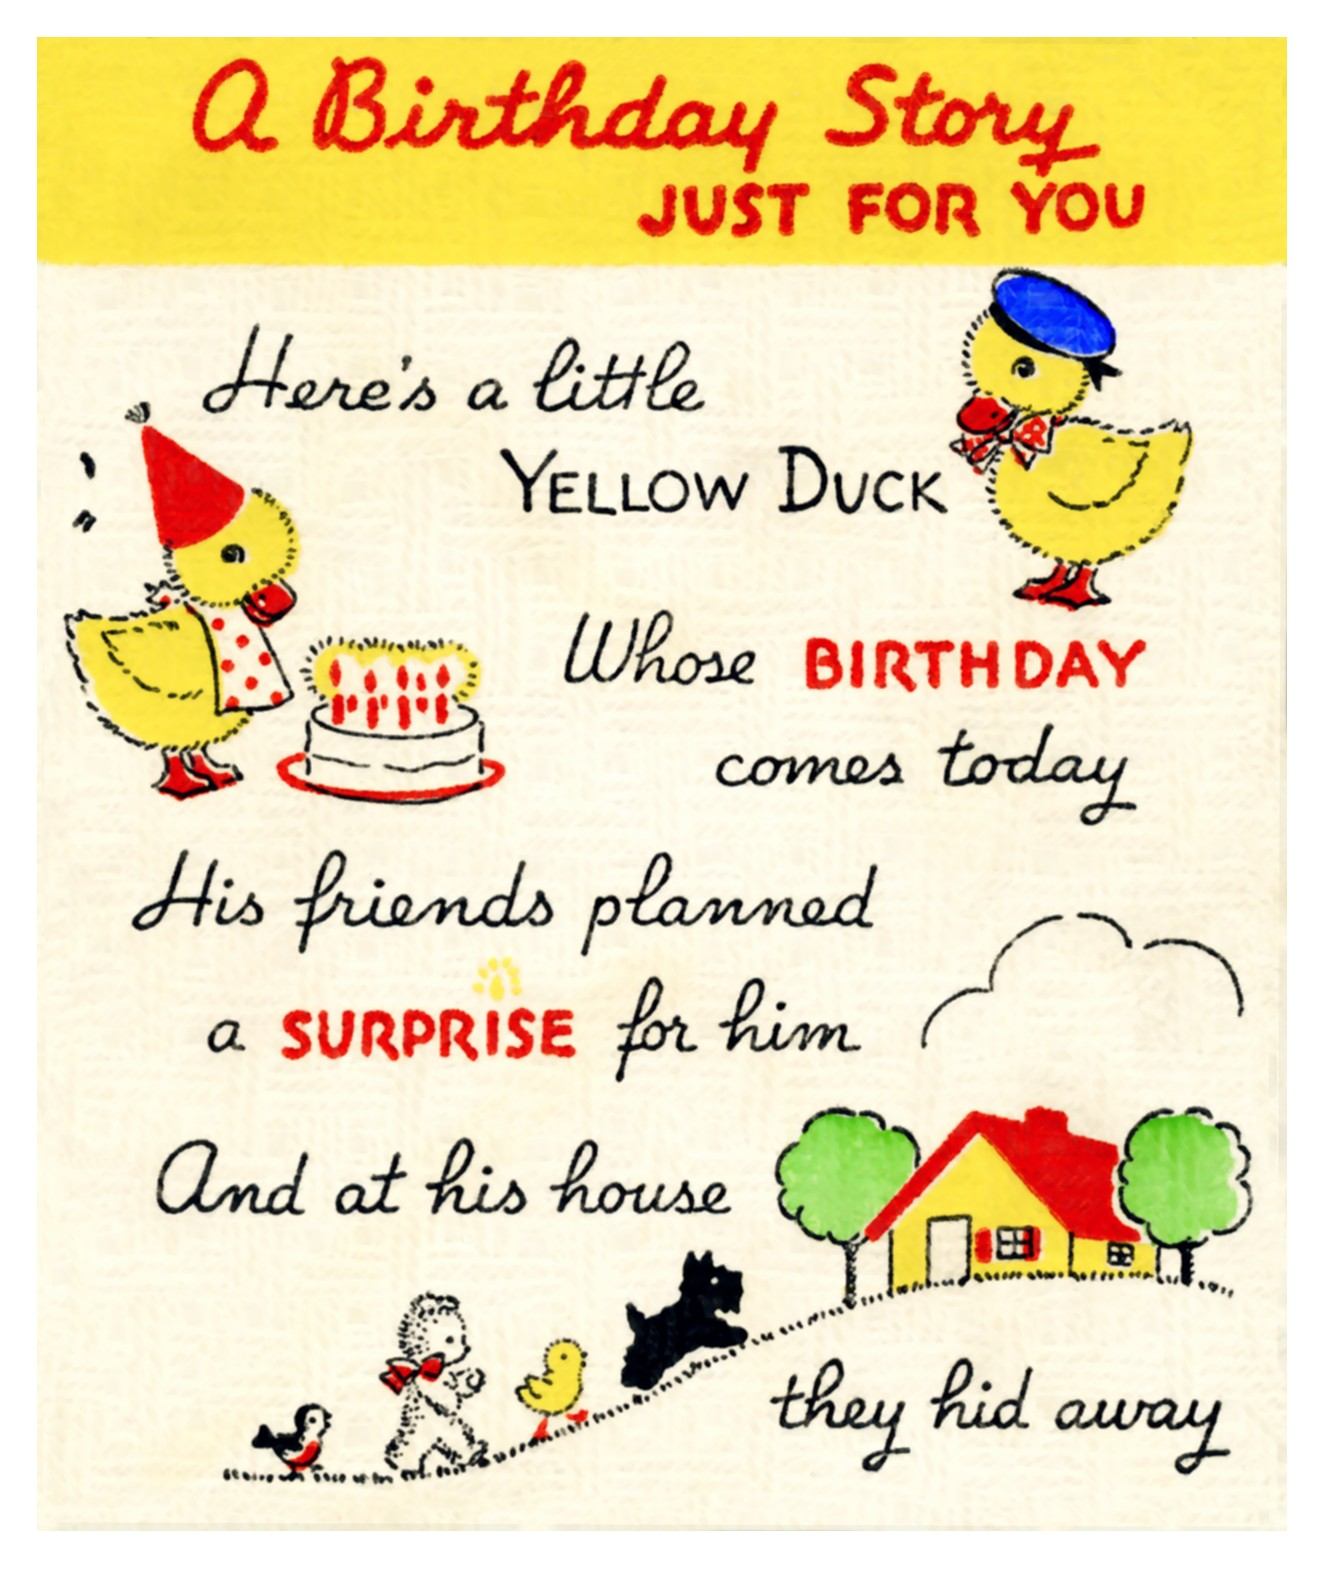 Really cute birthday letters seohoamolan21s soup funny birthday greeting really funny kristyandbryce Images